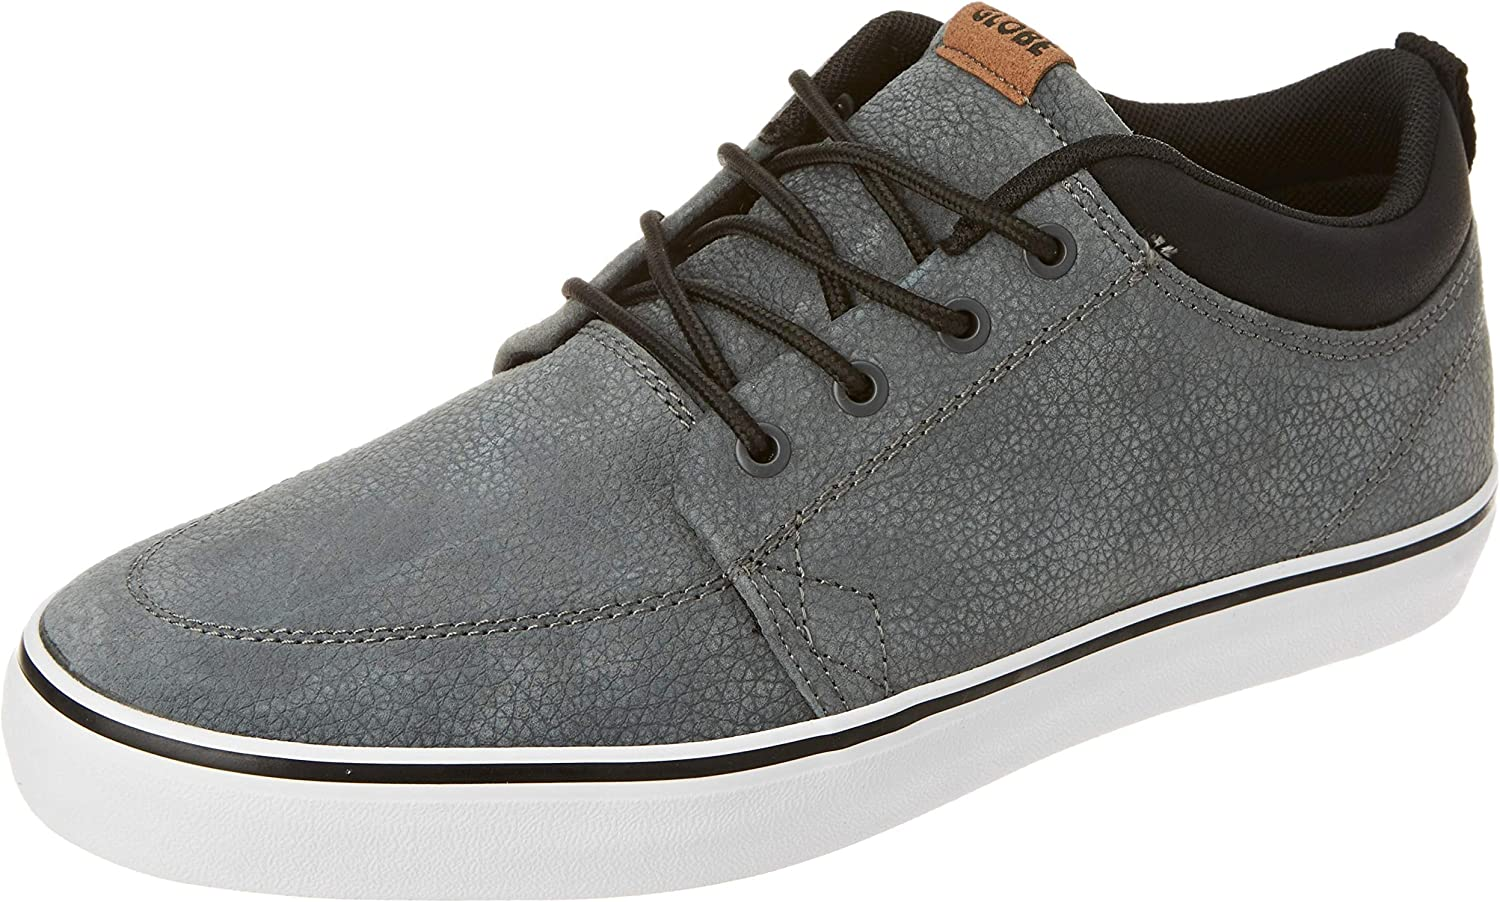 Globe cheap Men's Sales of SALE items from new works Gs Skate Shoe Boot